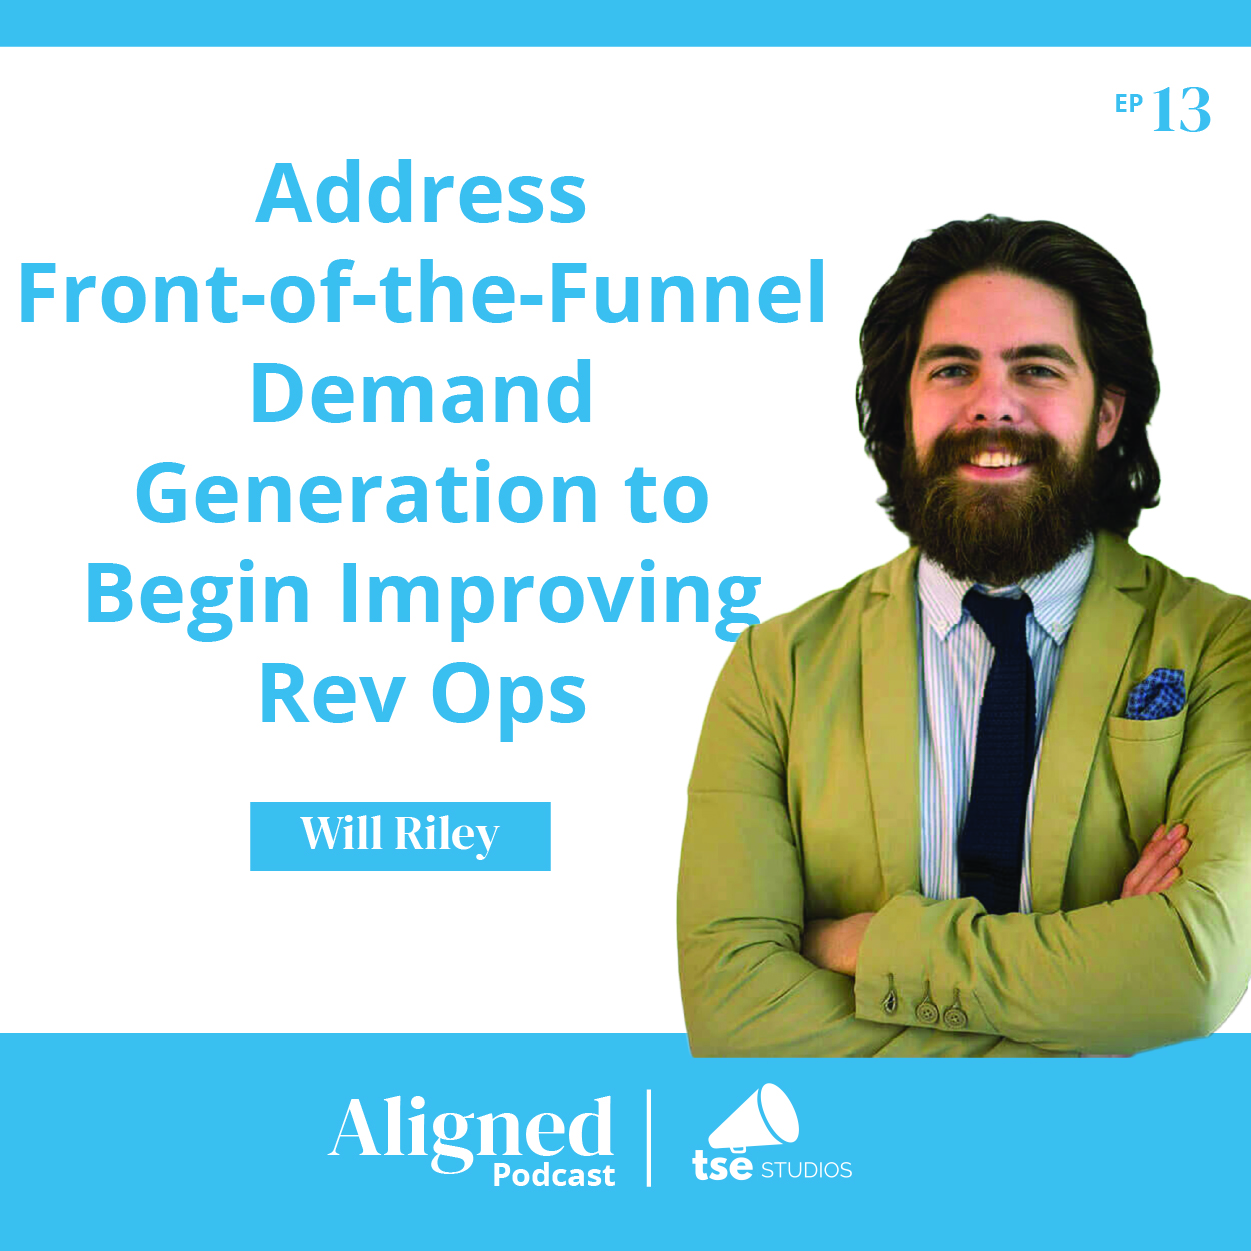 Address Front-of-the-Funnel Demand Generation to Begin Improving Rev Ops